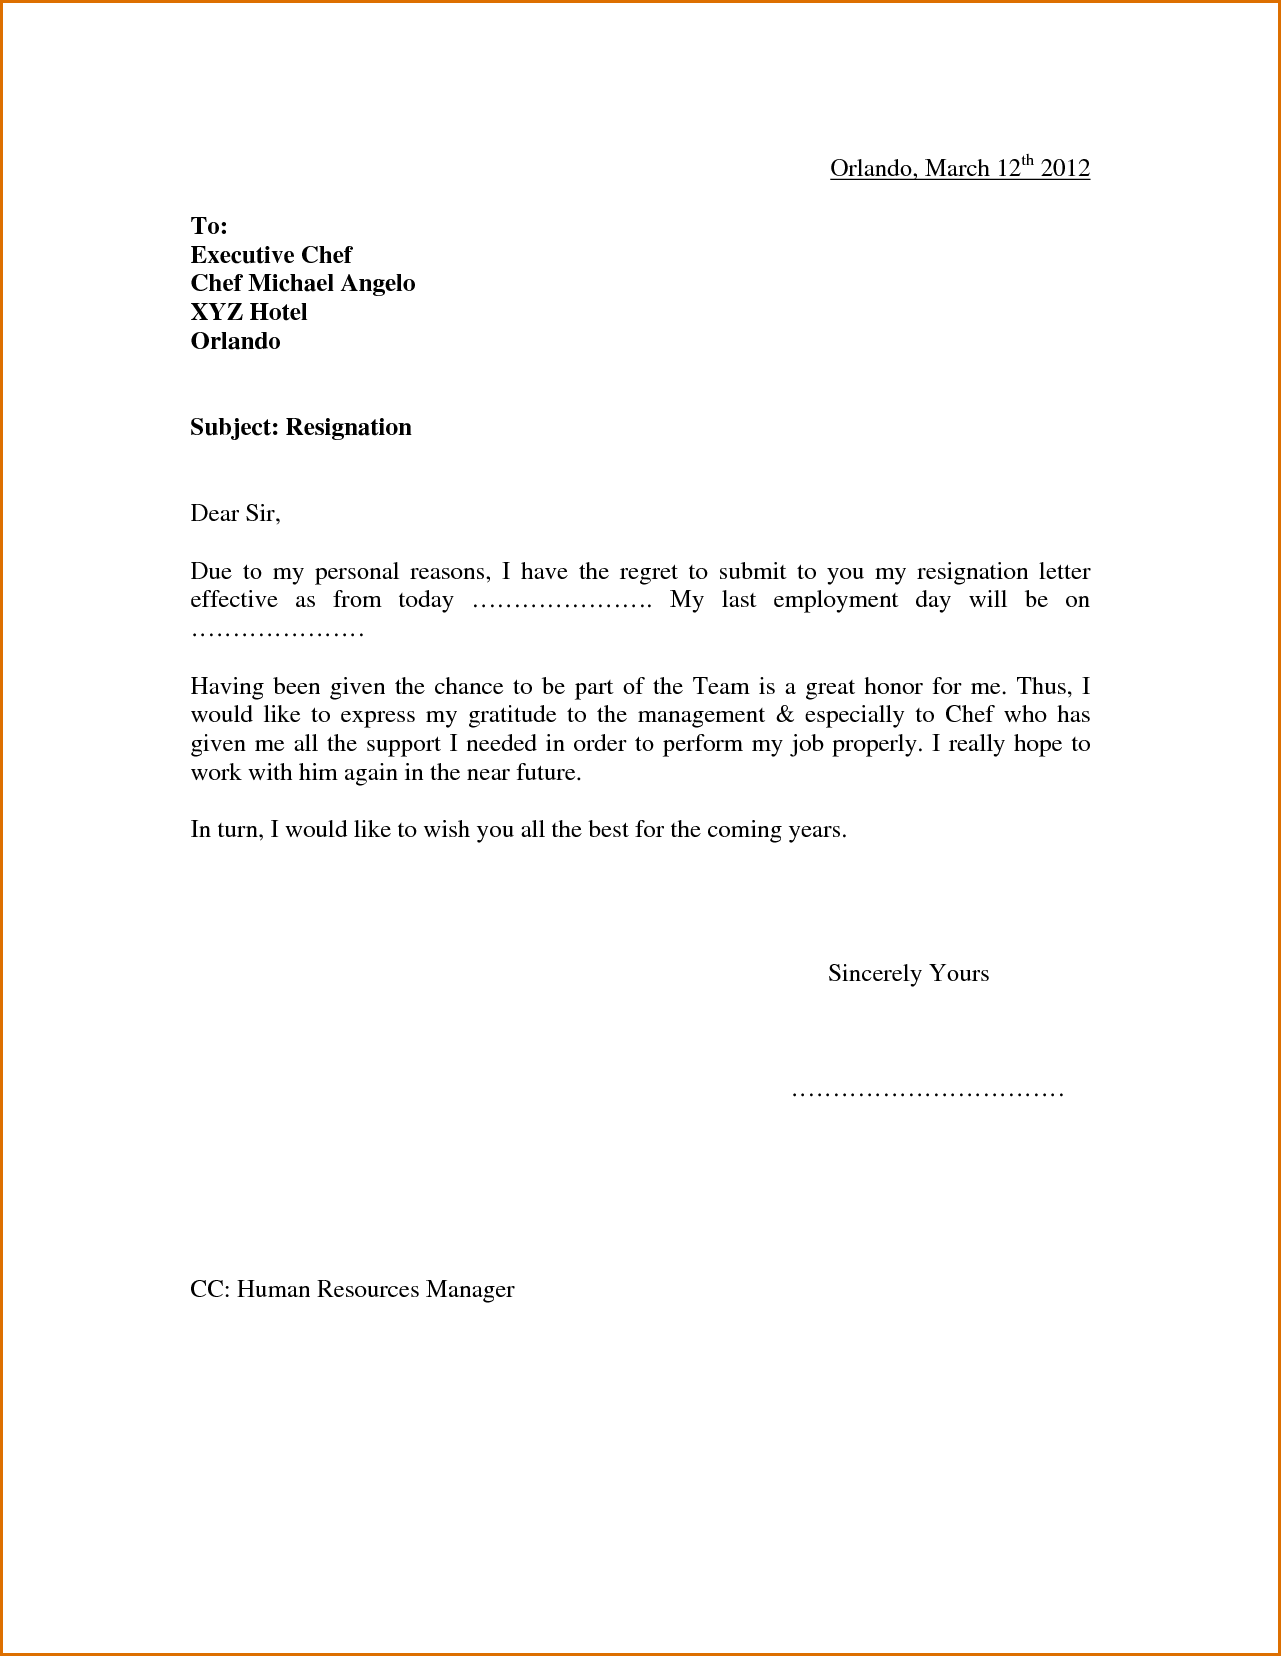 resignation letter samples resignation letters samples 1650 · 53 kb · png sample resignation letter due to personal